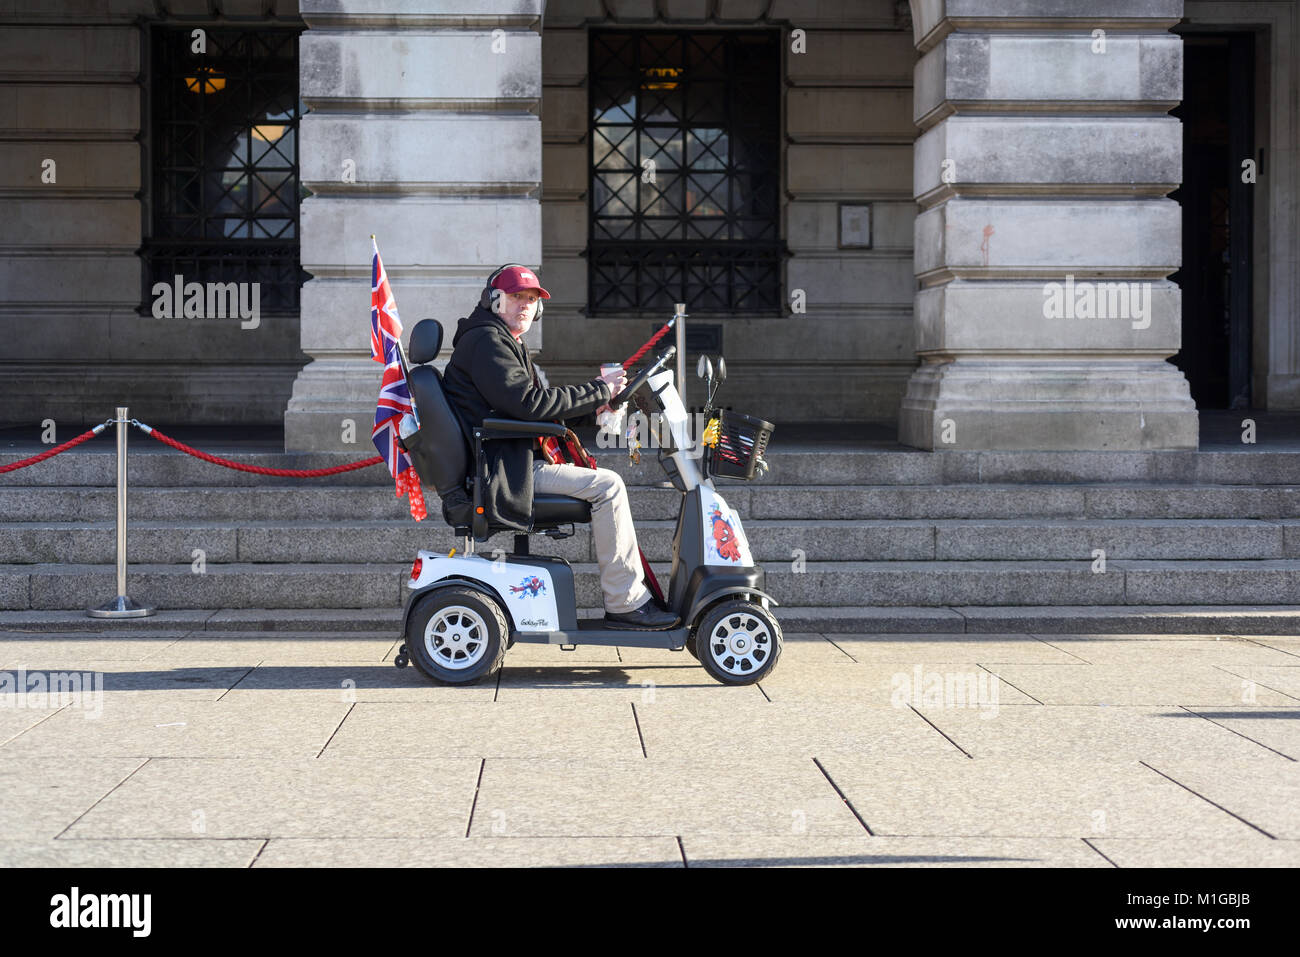 Disability Scooter rider Old Market Square Nottingham,UK. - Stock Image